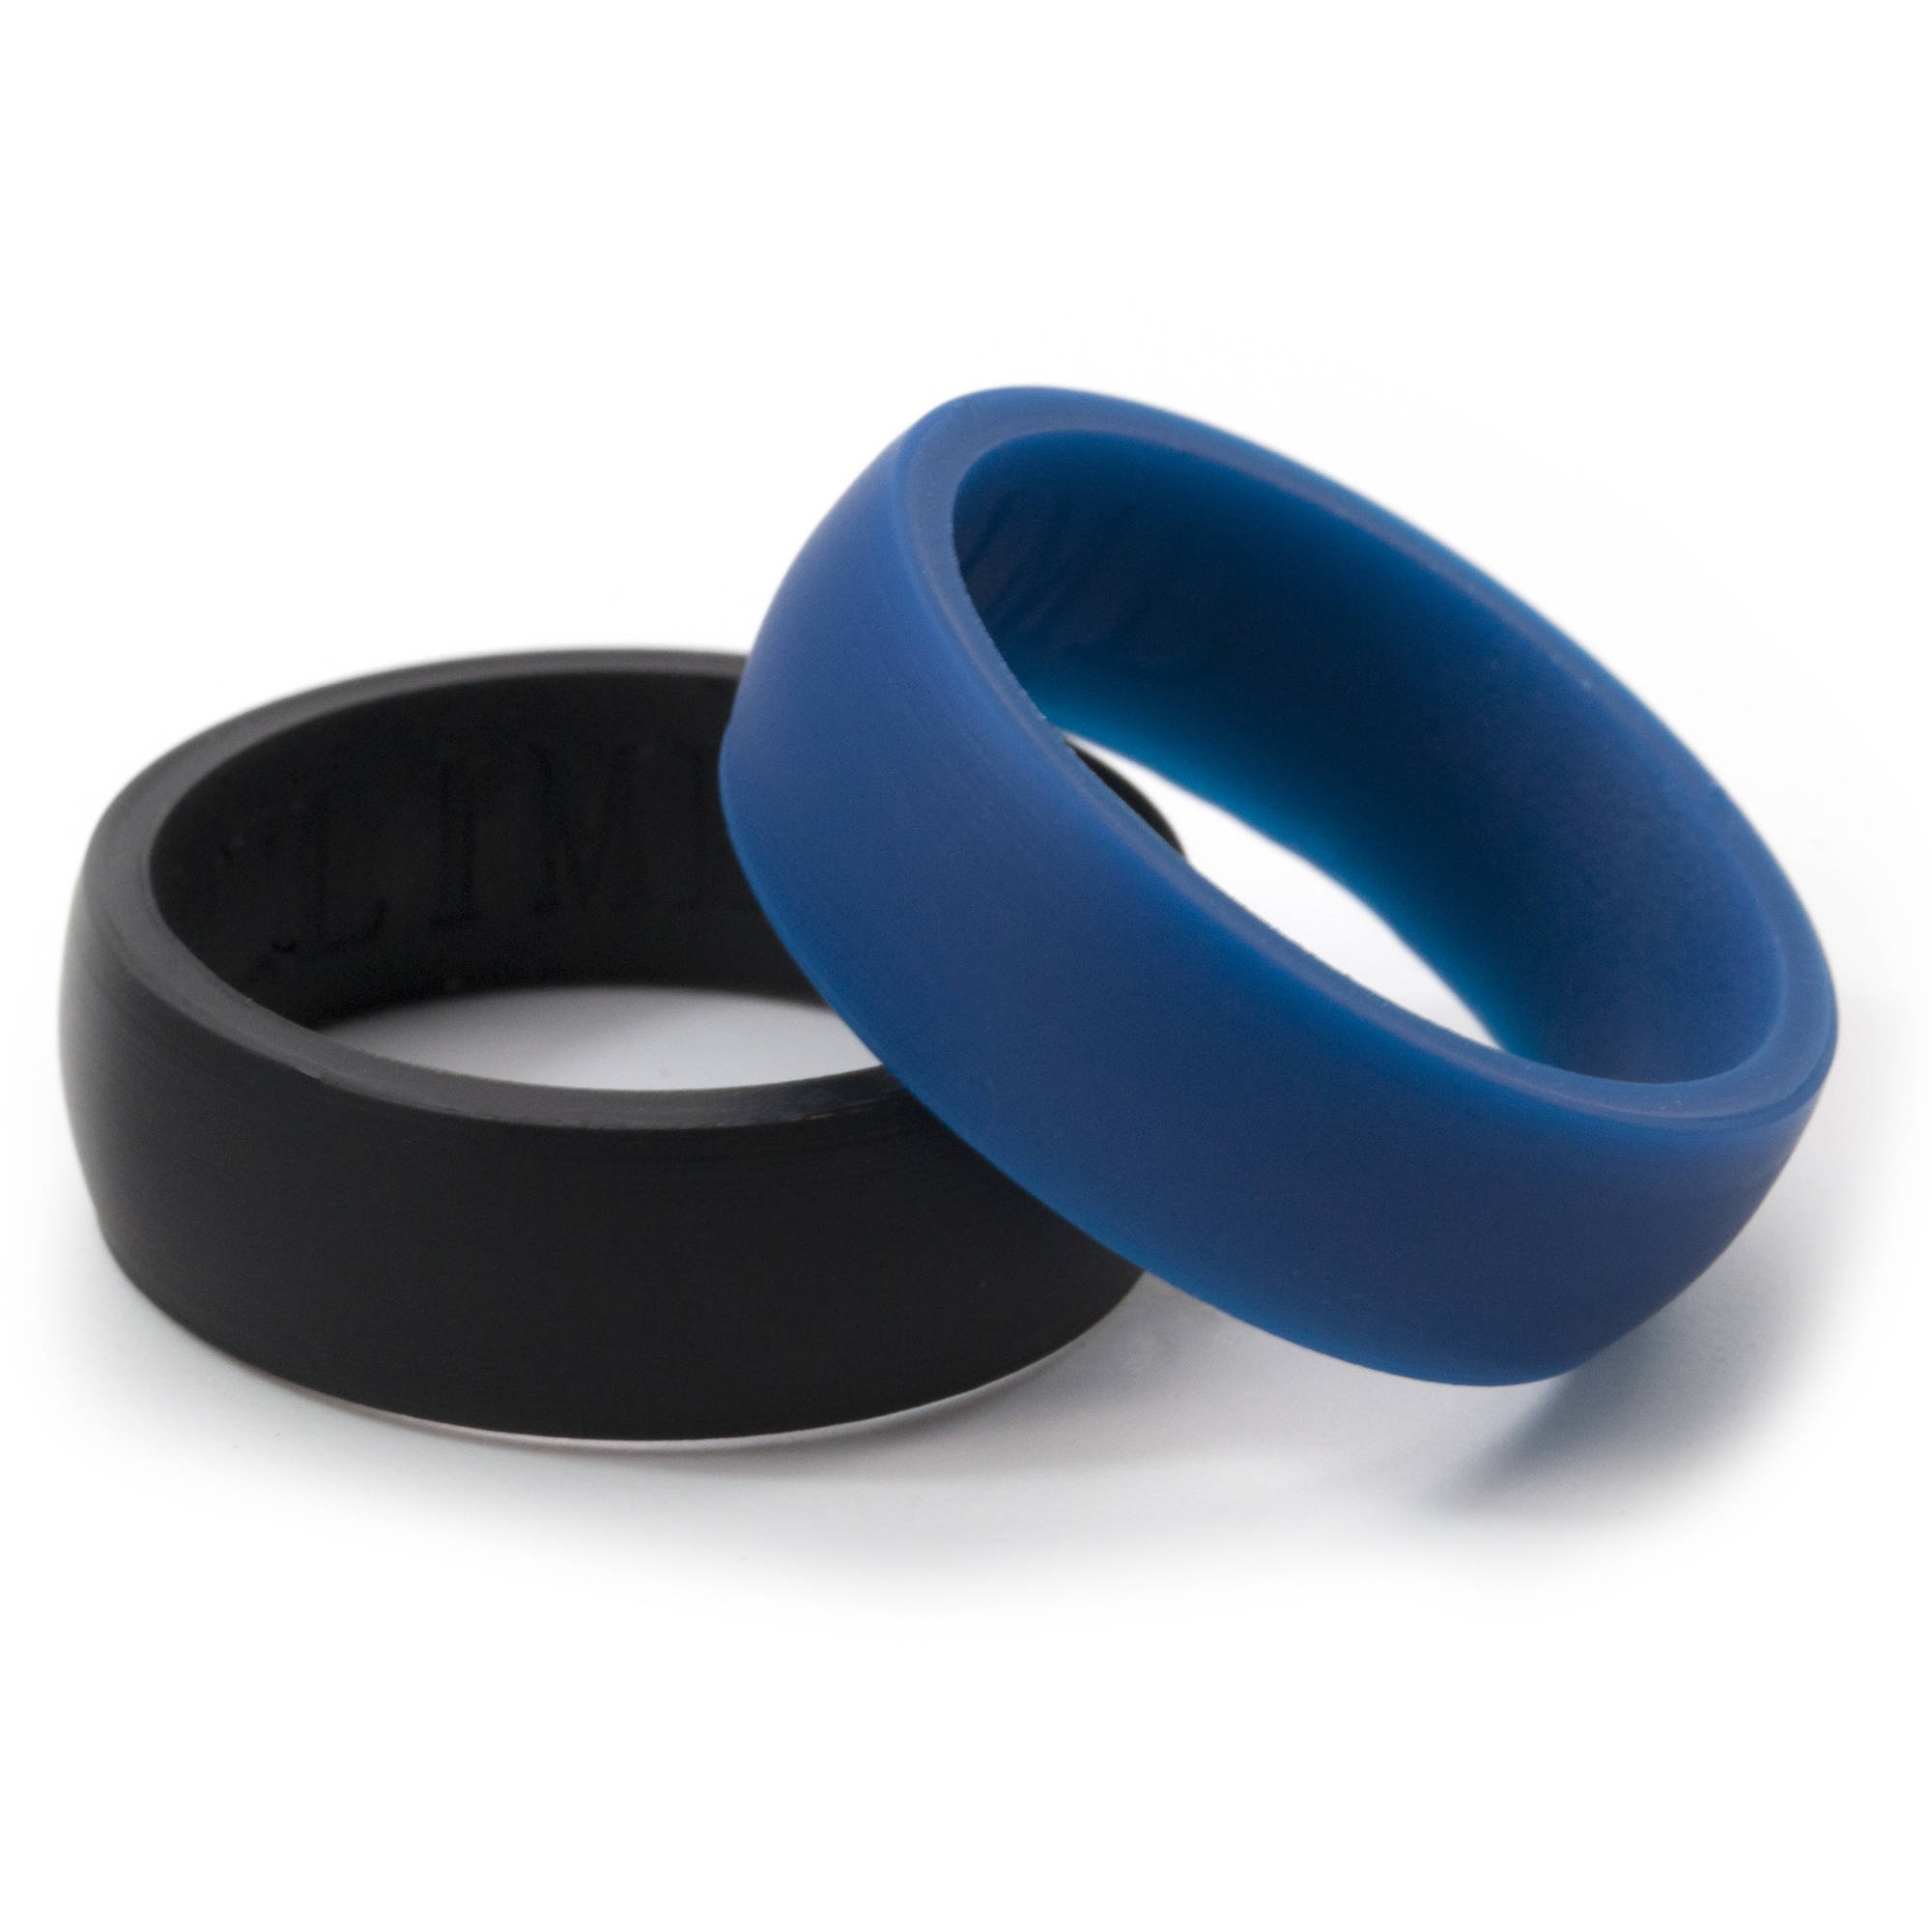 8mm HR Black and Blue Silicone Rings, 2-Pack